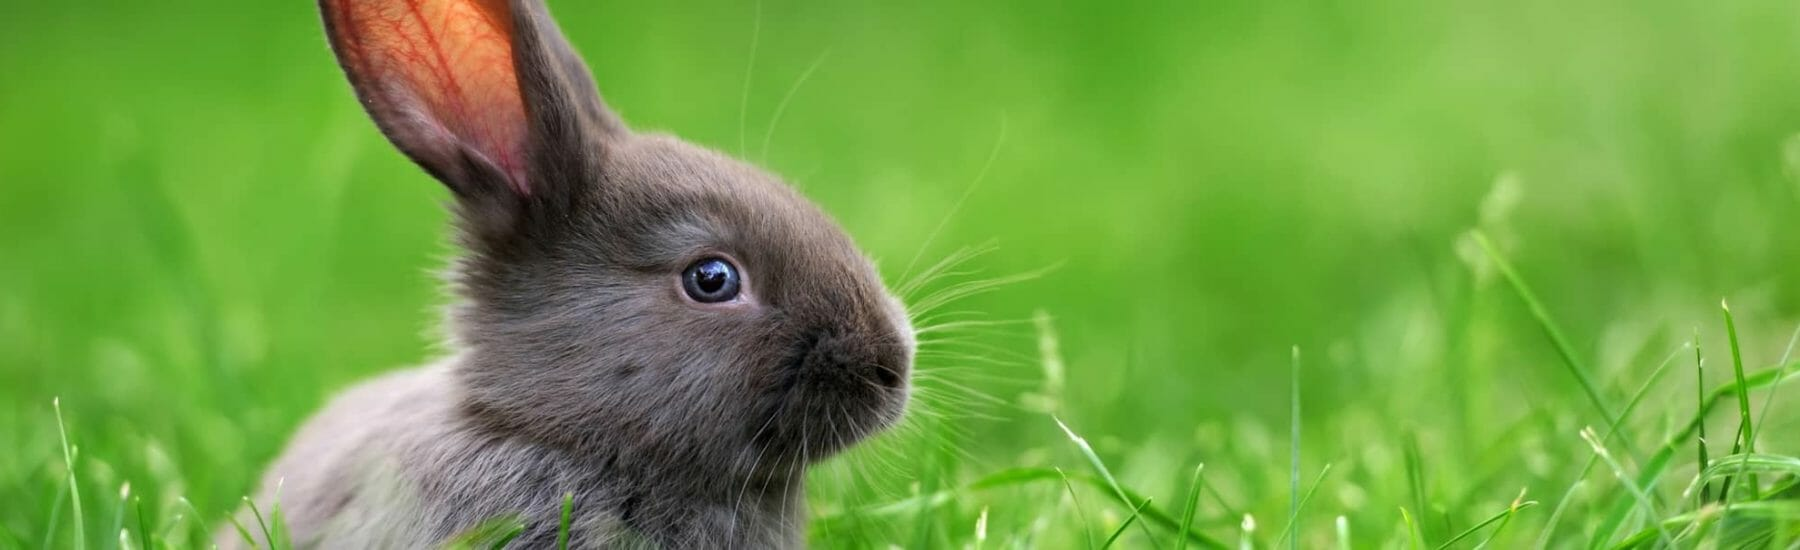 Grey bunny in grass